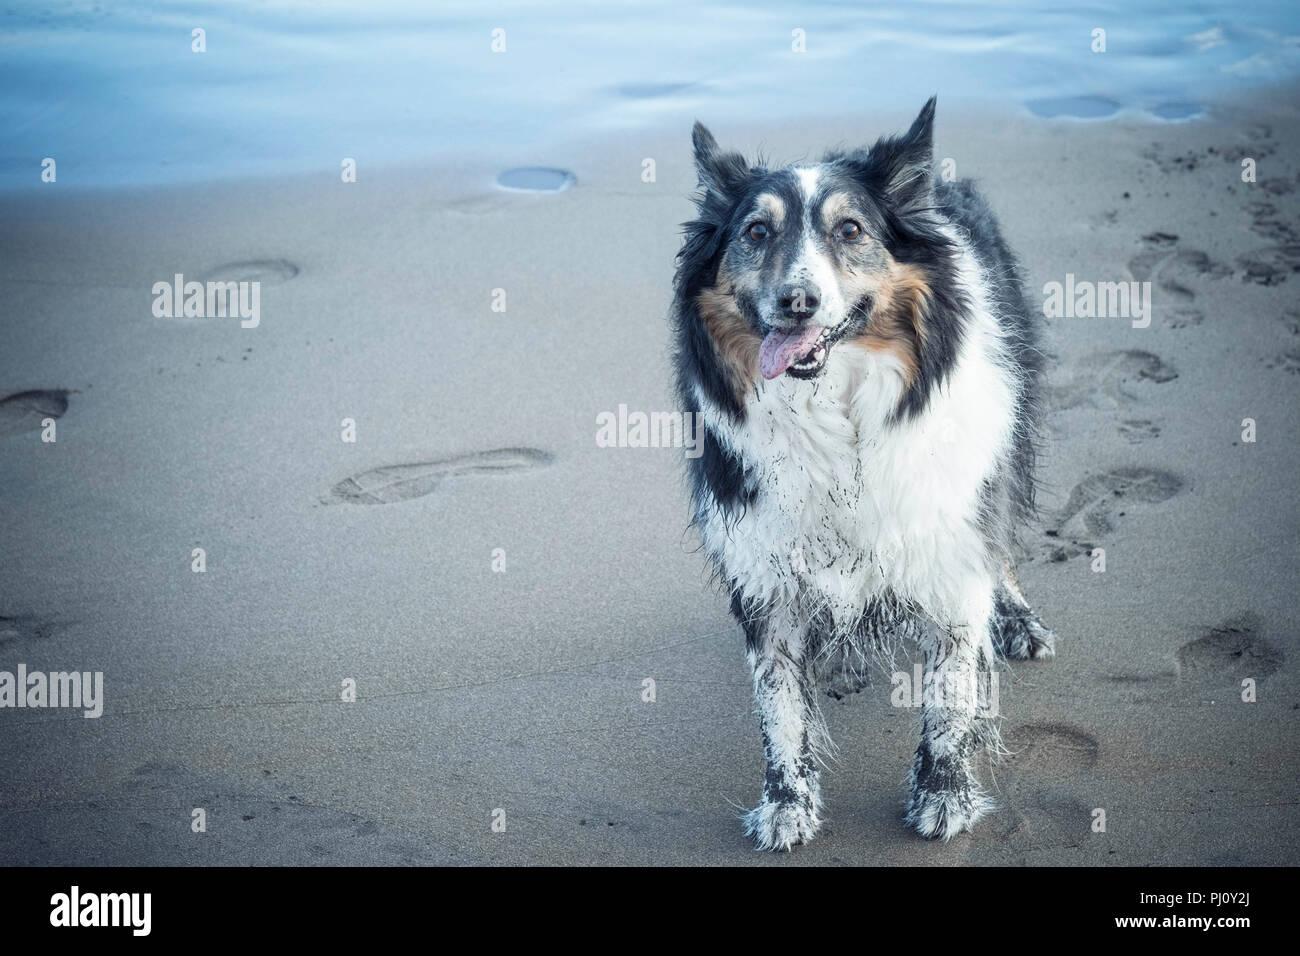 dirty happy dog border collie pjayful and cheerful. enjoyed to play at the beach with the sand and the water. - Stock Image